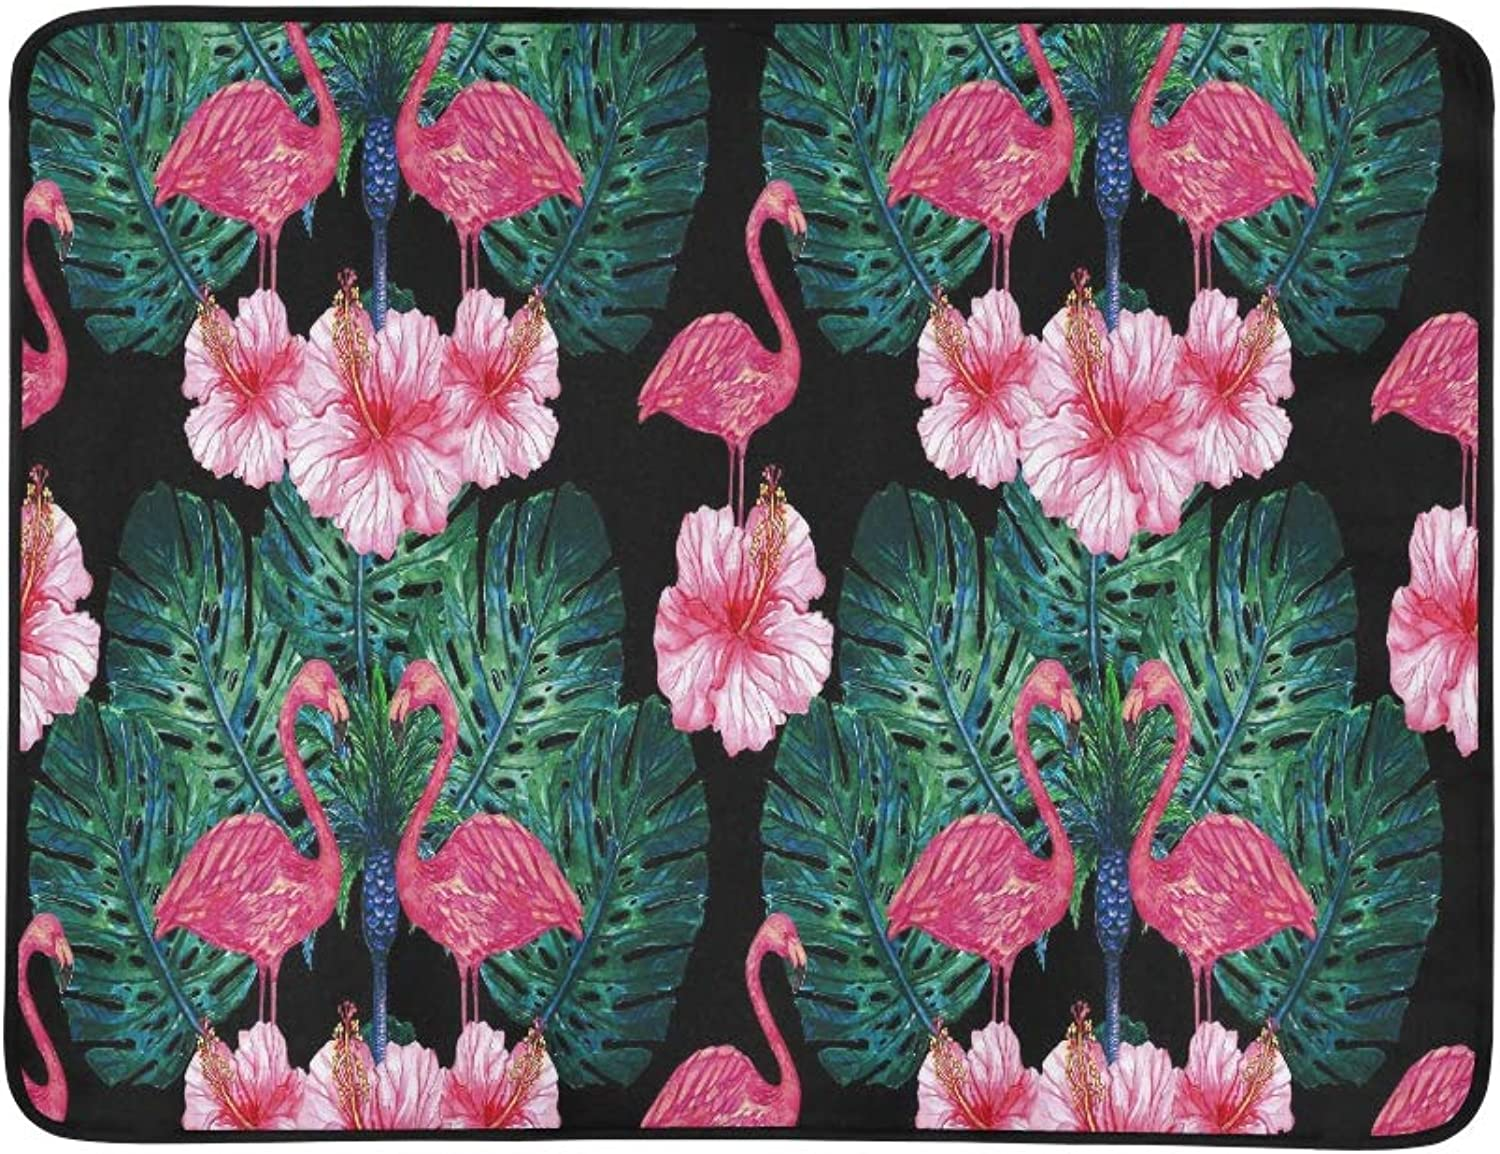 Watercolor Pink Flamingos Tropical Flowers Jungl Pattern Portable and Foldable Blanket Mat 60x78 Inch Handy Mat for Camping Picnic Beach Indoor Outdoor Travel